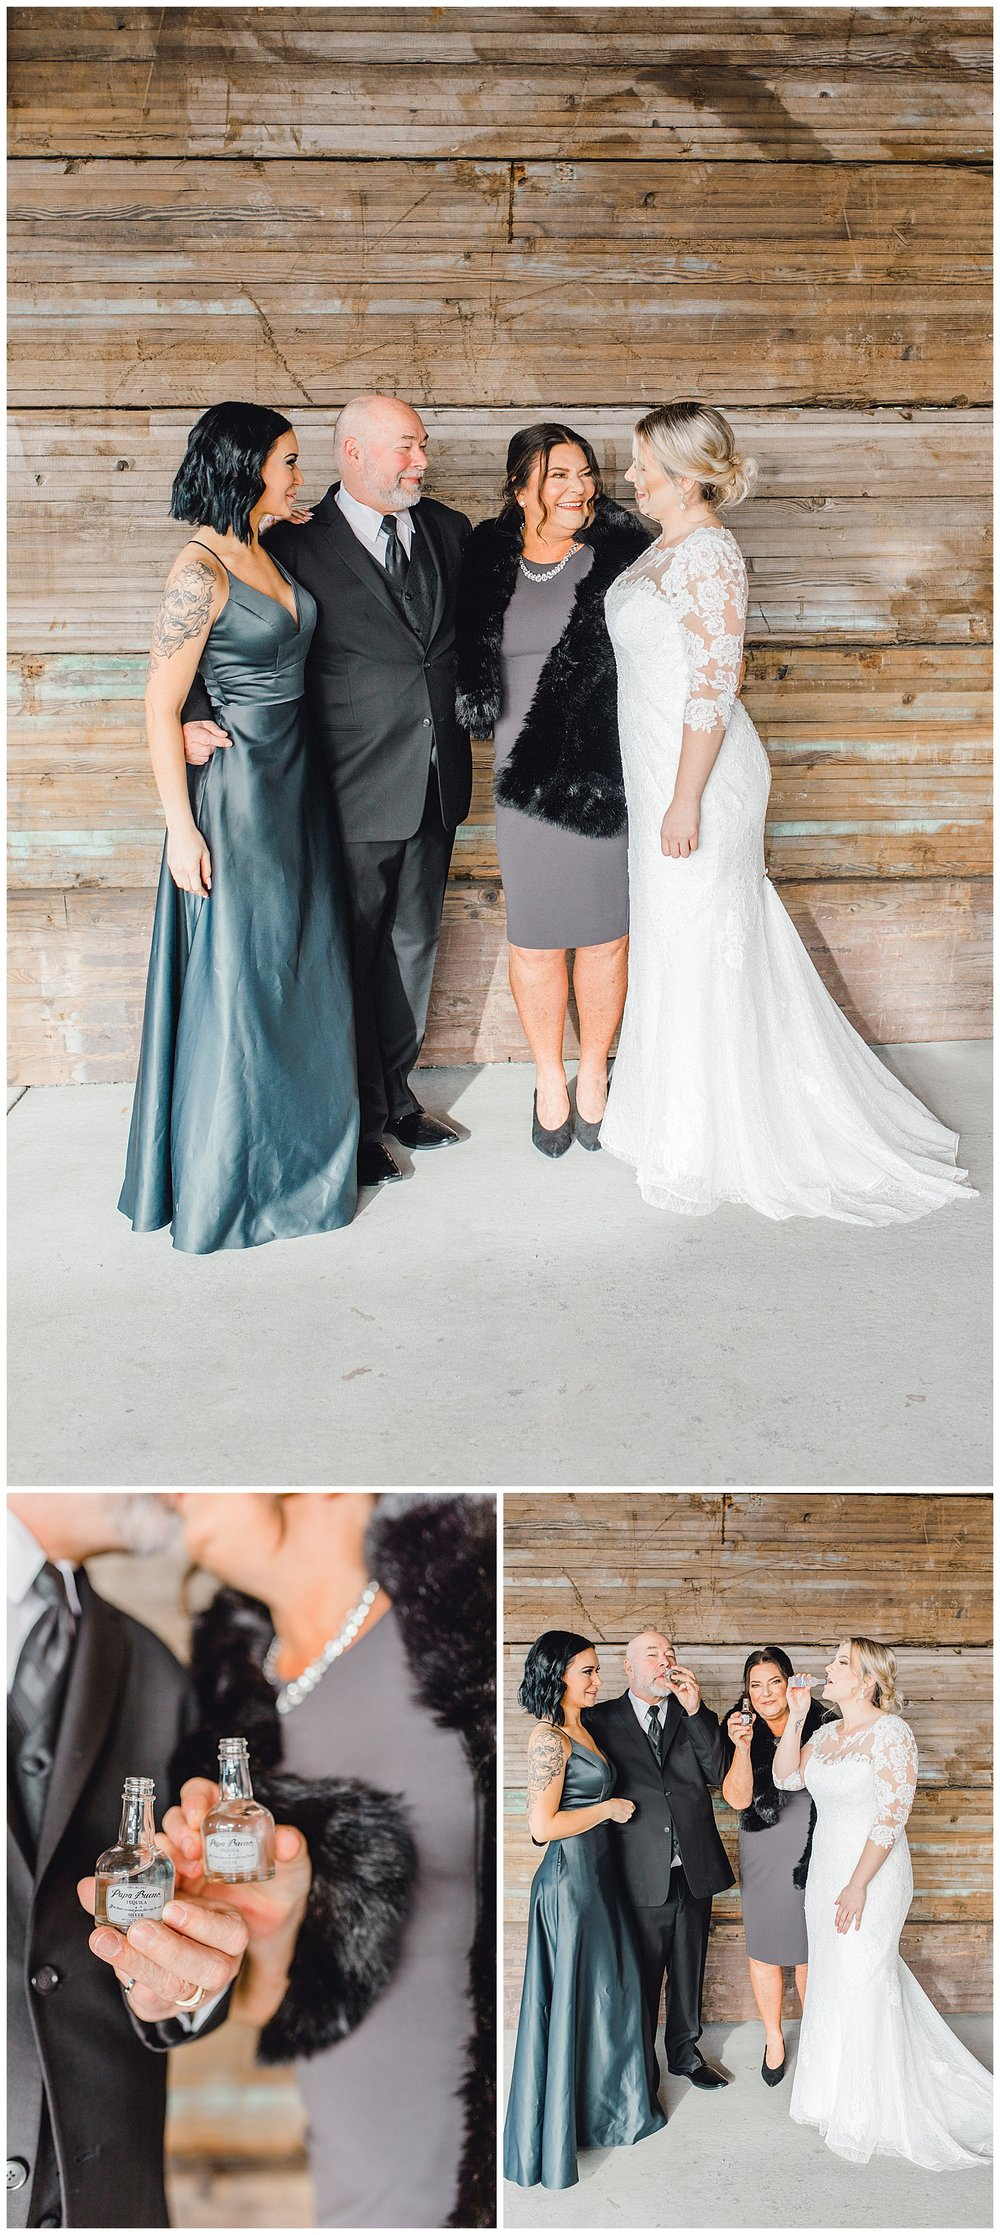 ERC-6988_A beautiful winter wedding in Snohomish, Washington at Thomas Family Farm was simply perfect.  This rustic and modern styled wedding was dripping with romance and photographed by Emma Rose Company, a pacific northwest wedding photographer..jpg